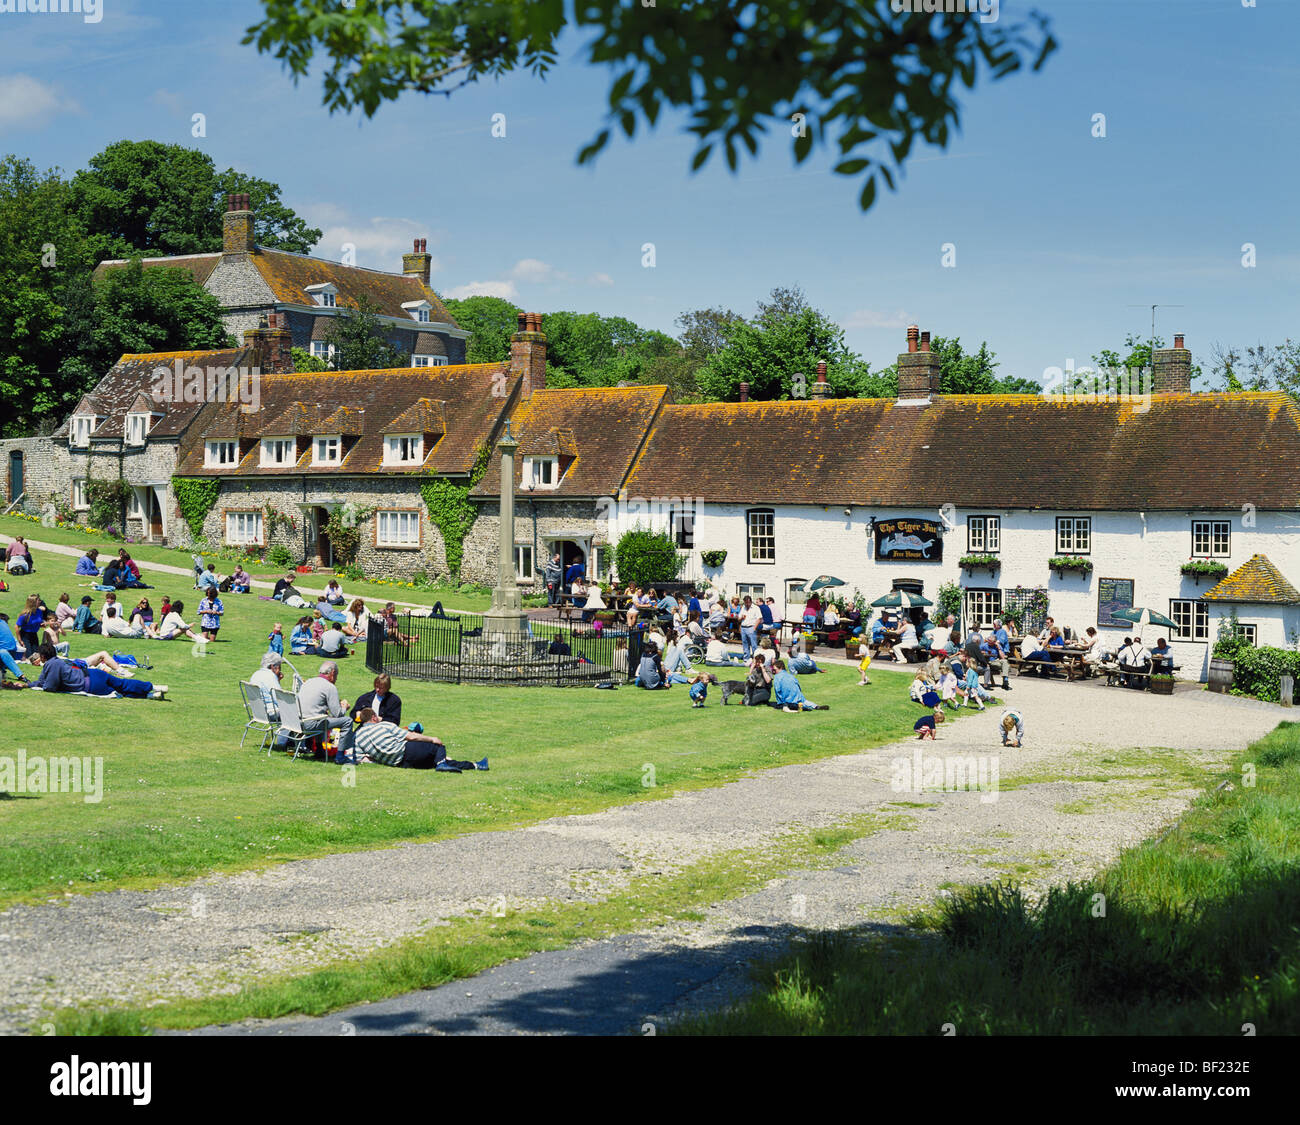 East Dean Village Green and the Tiger Inn, East Sussex, England, UK, GB Stock Photo